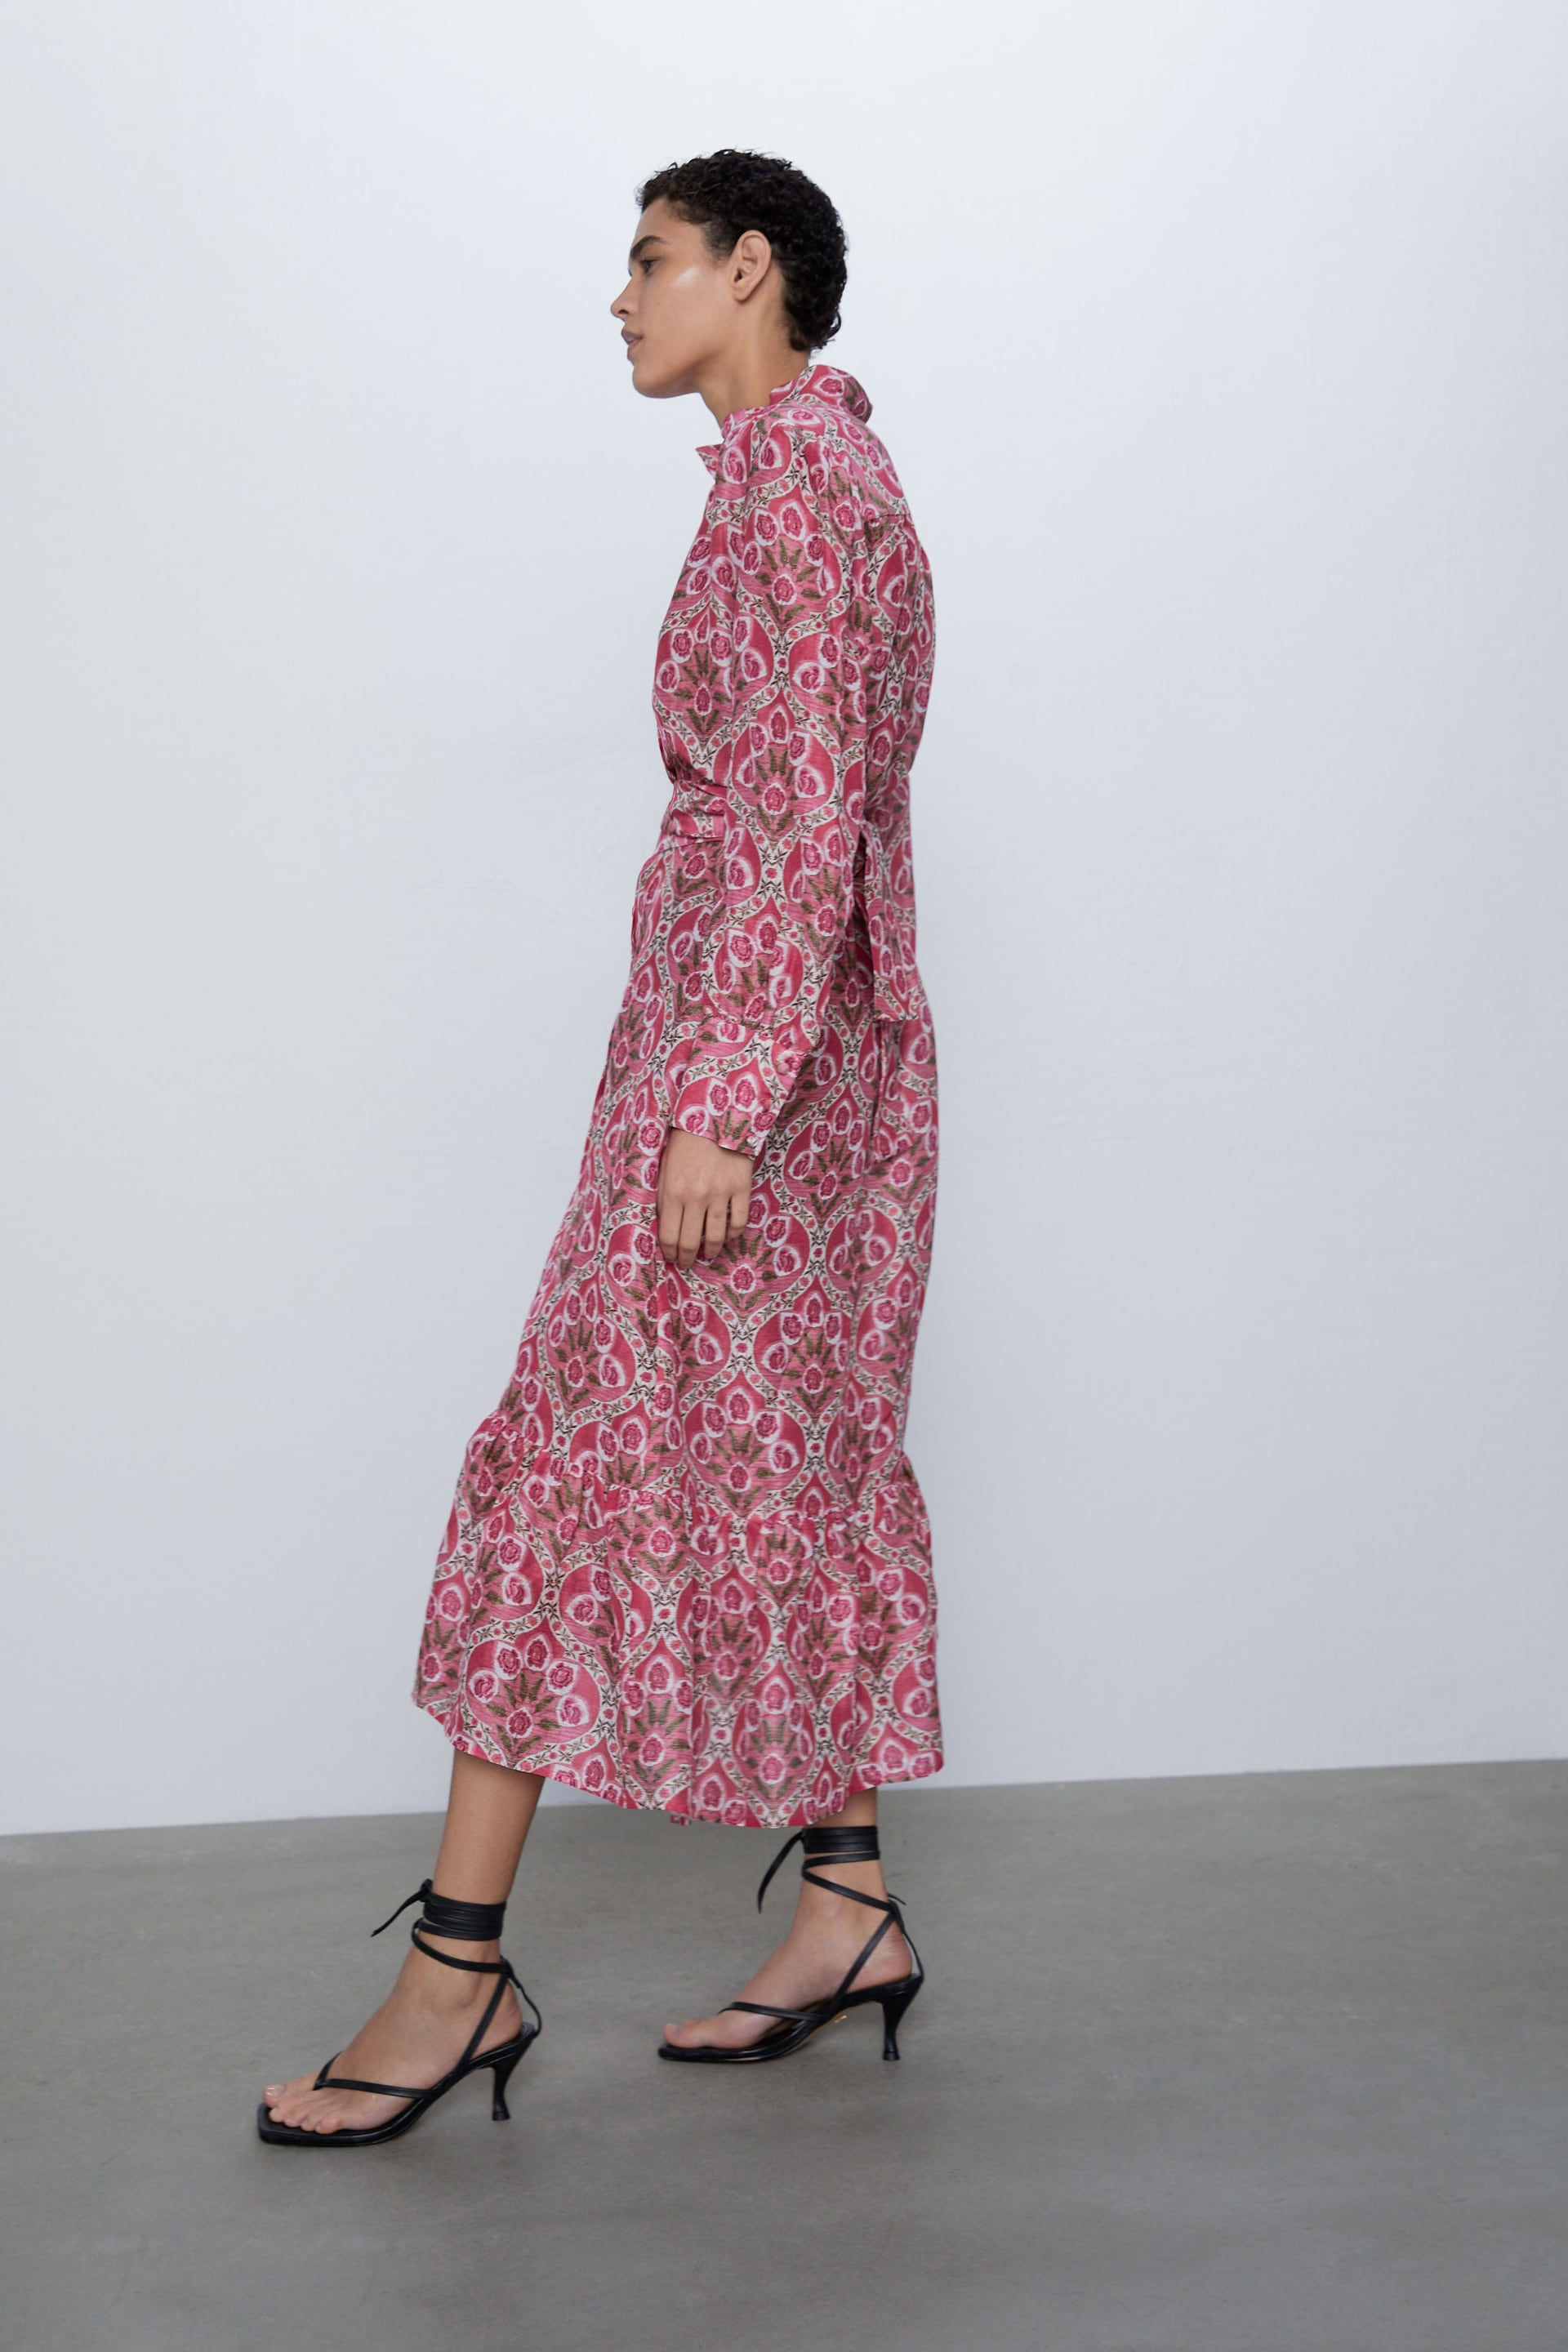 ZARA NEW WOMAN MIDI FLORAL PRINTED MIDI DRESS BELT RUFFLED PINK XS-XXL  2731//070